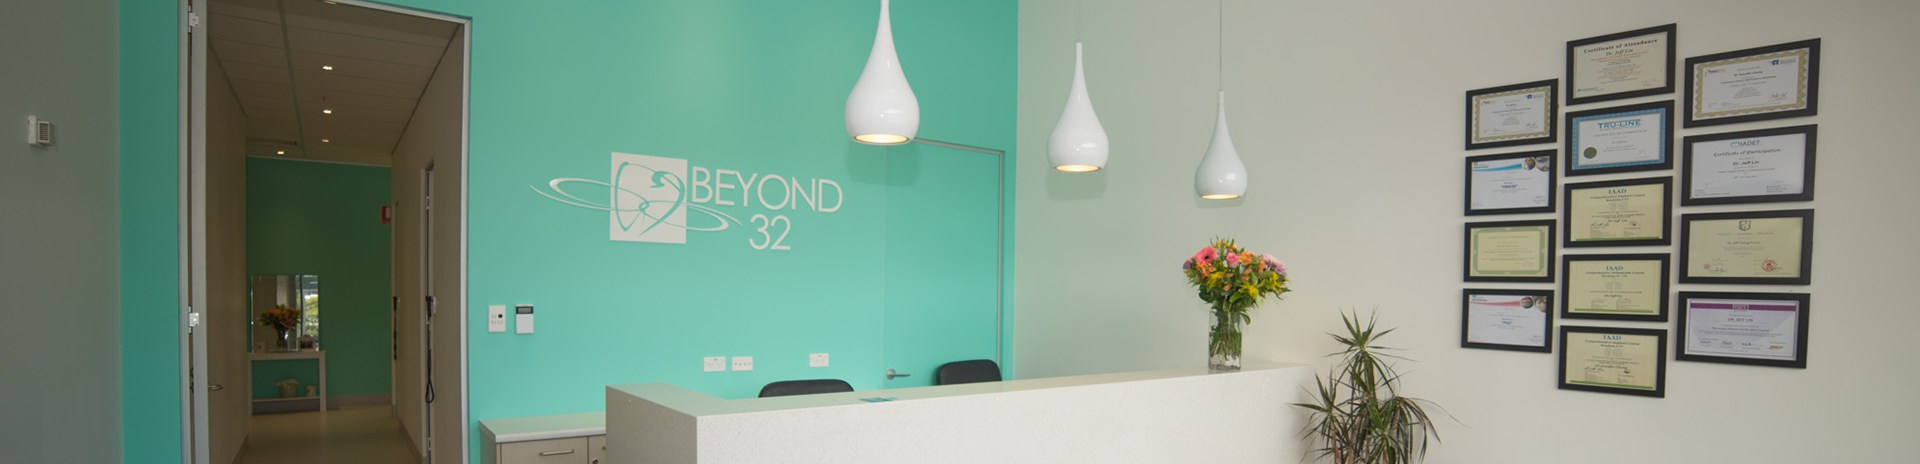 Beyond 32 Dental Cherrybrook